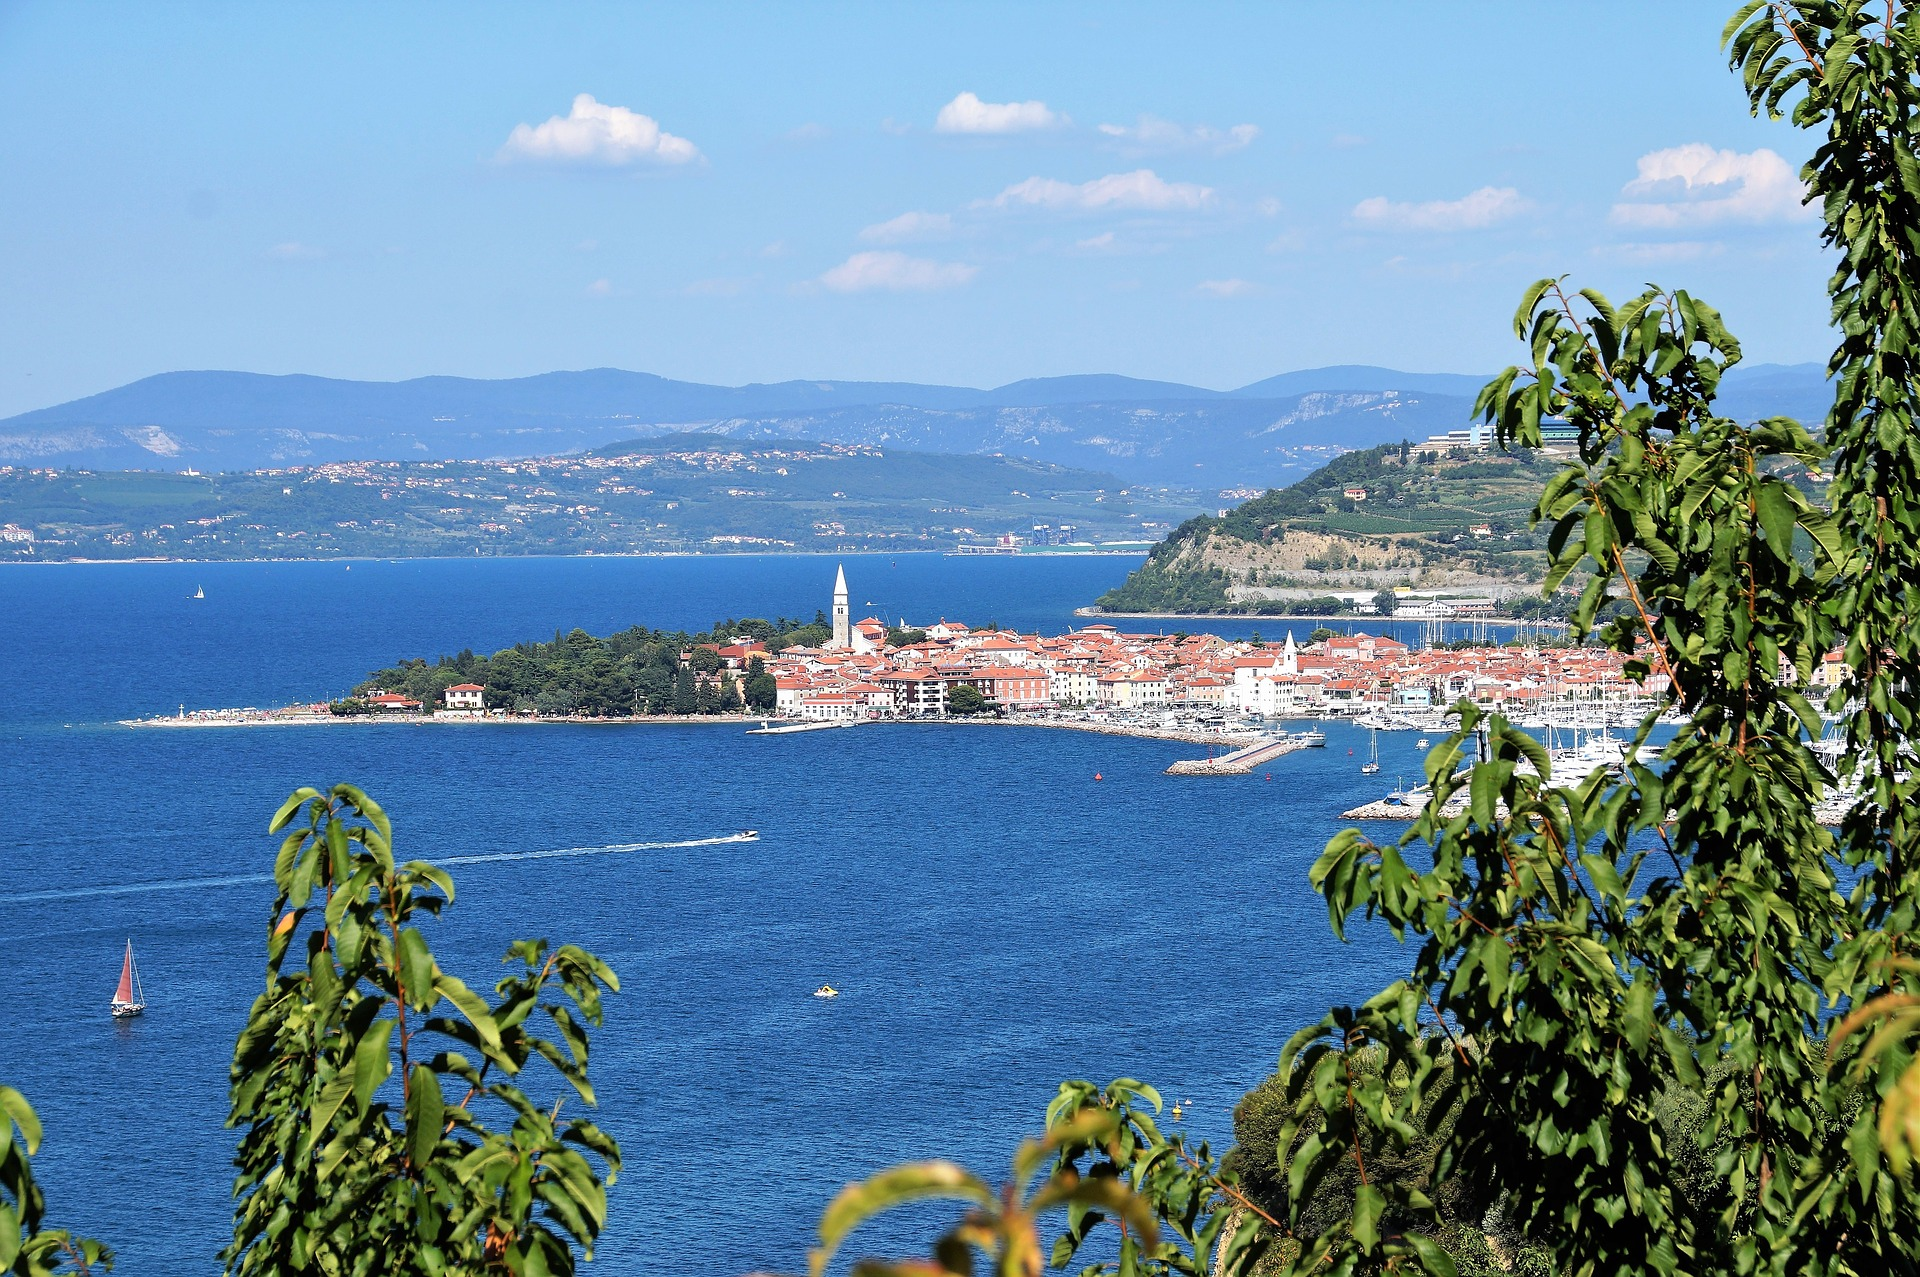 the-town-of-izola-2672408_1920